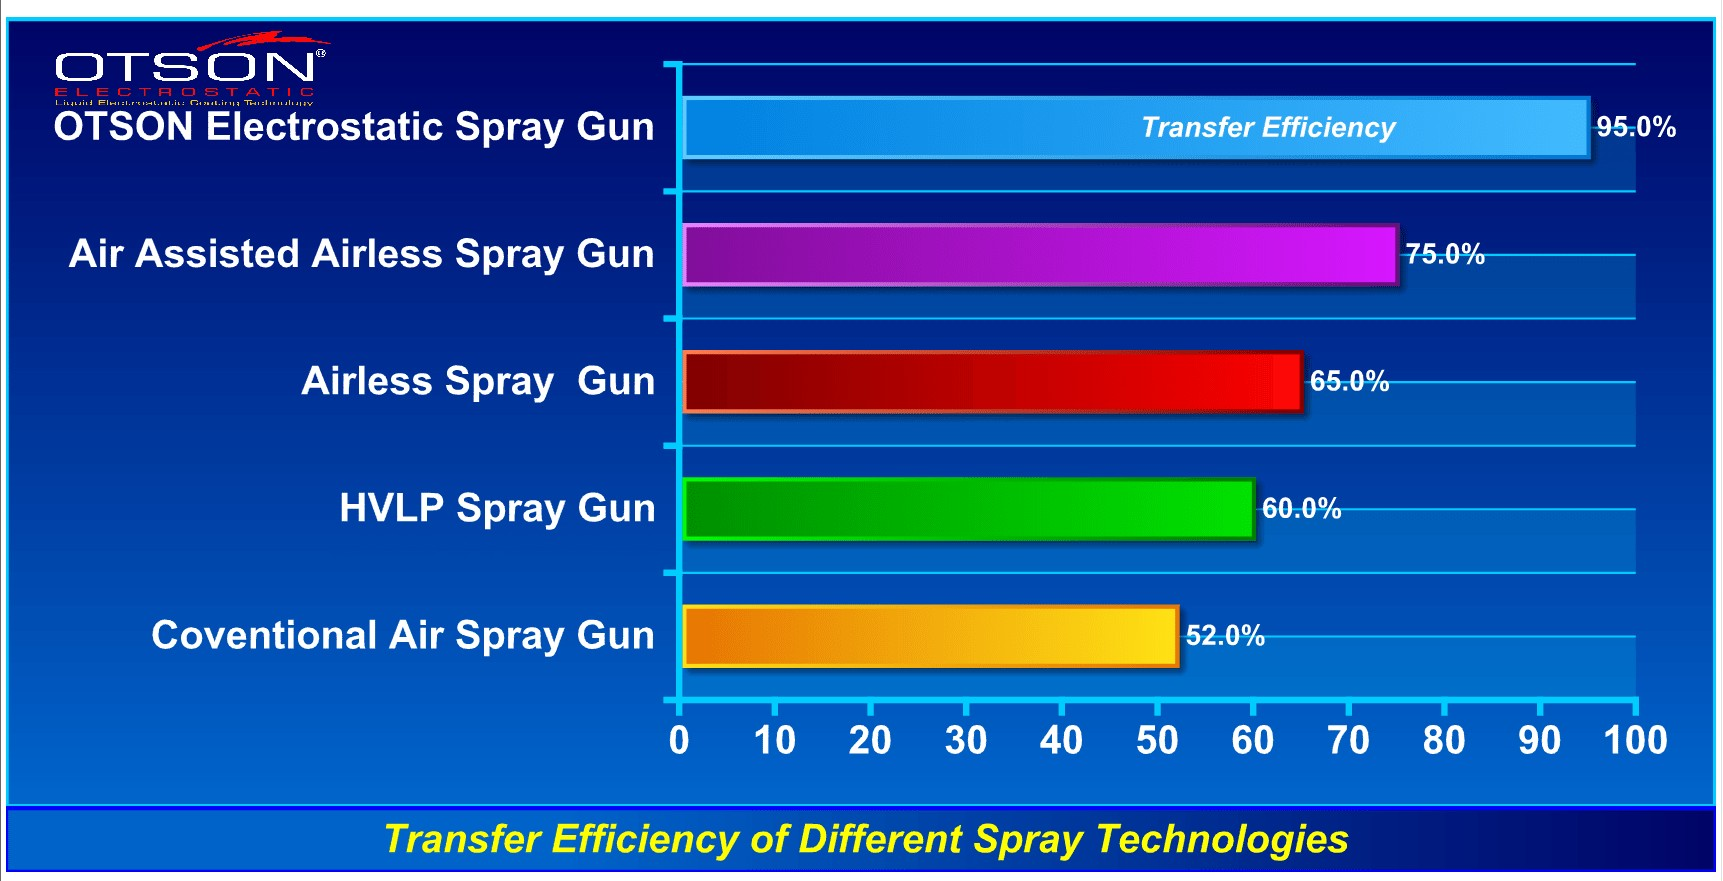 Transfer Efficiency Electrostatic Spray Gun